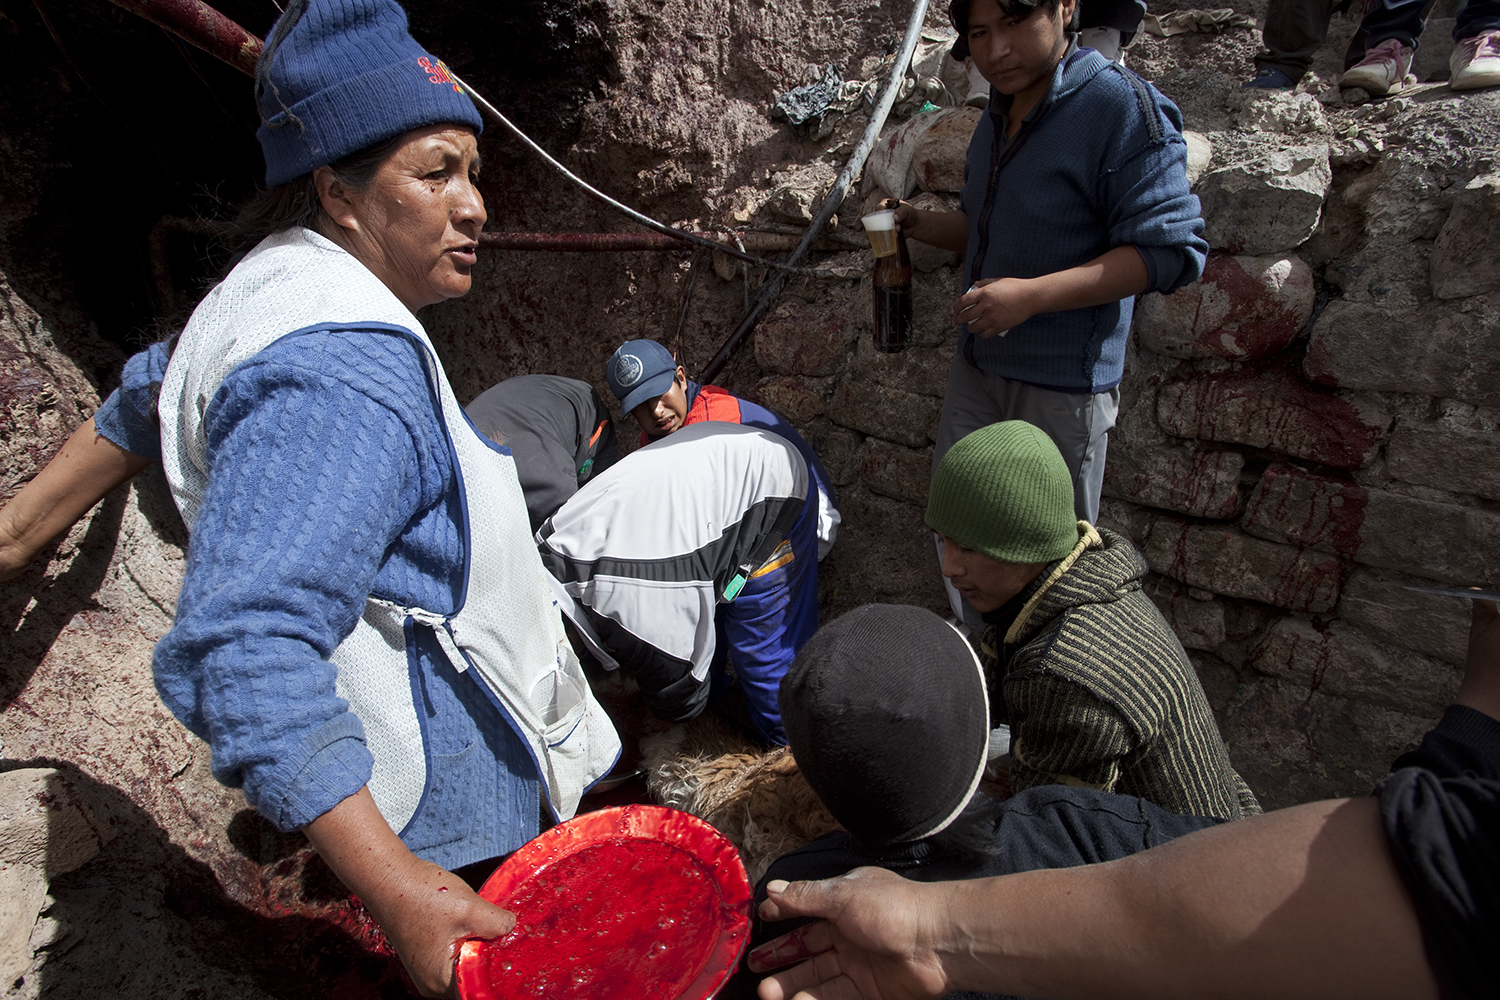 Women are considered bad luck for mining and are rarely seen at the mine. The exception is the day of the llama sacrifices, when they celebrate with the men.